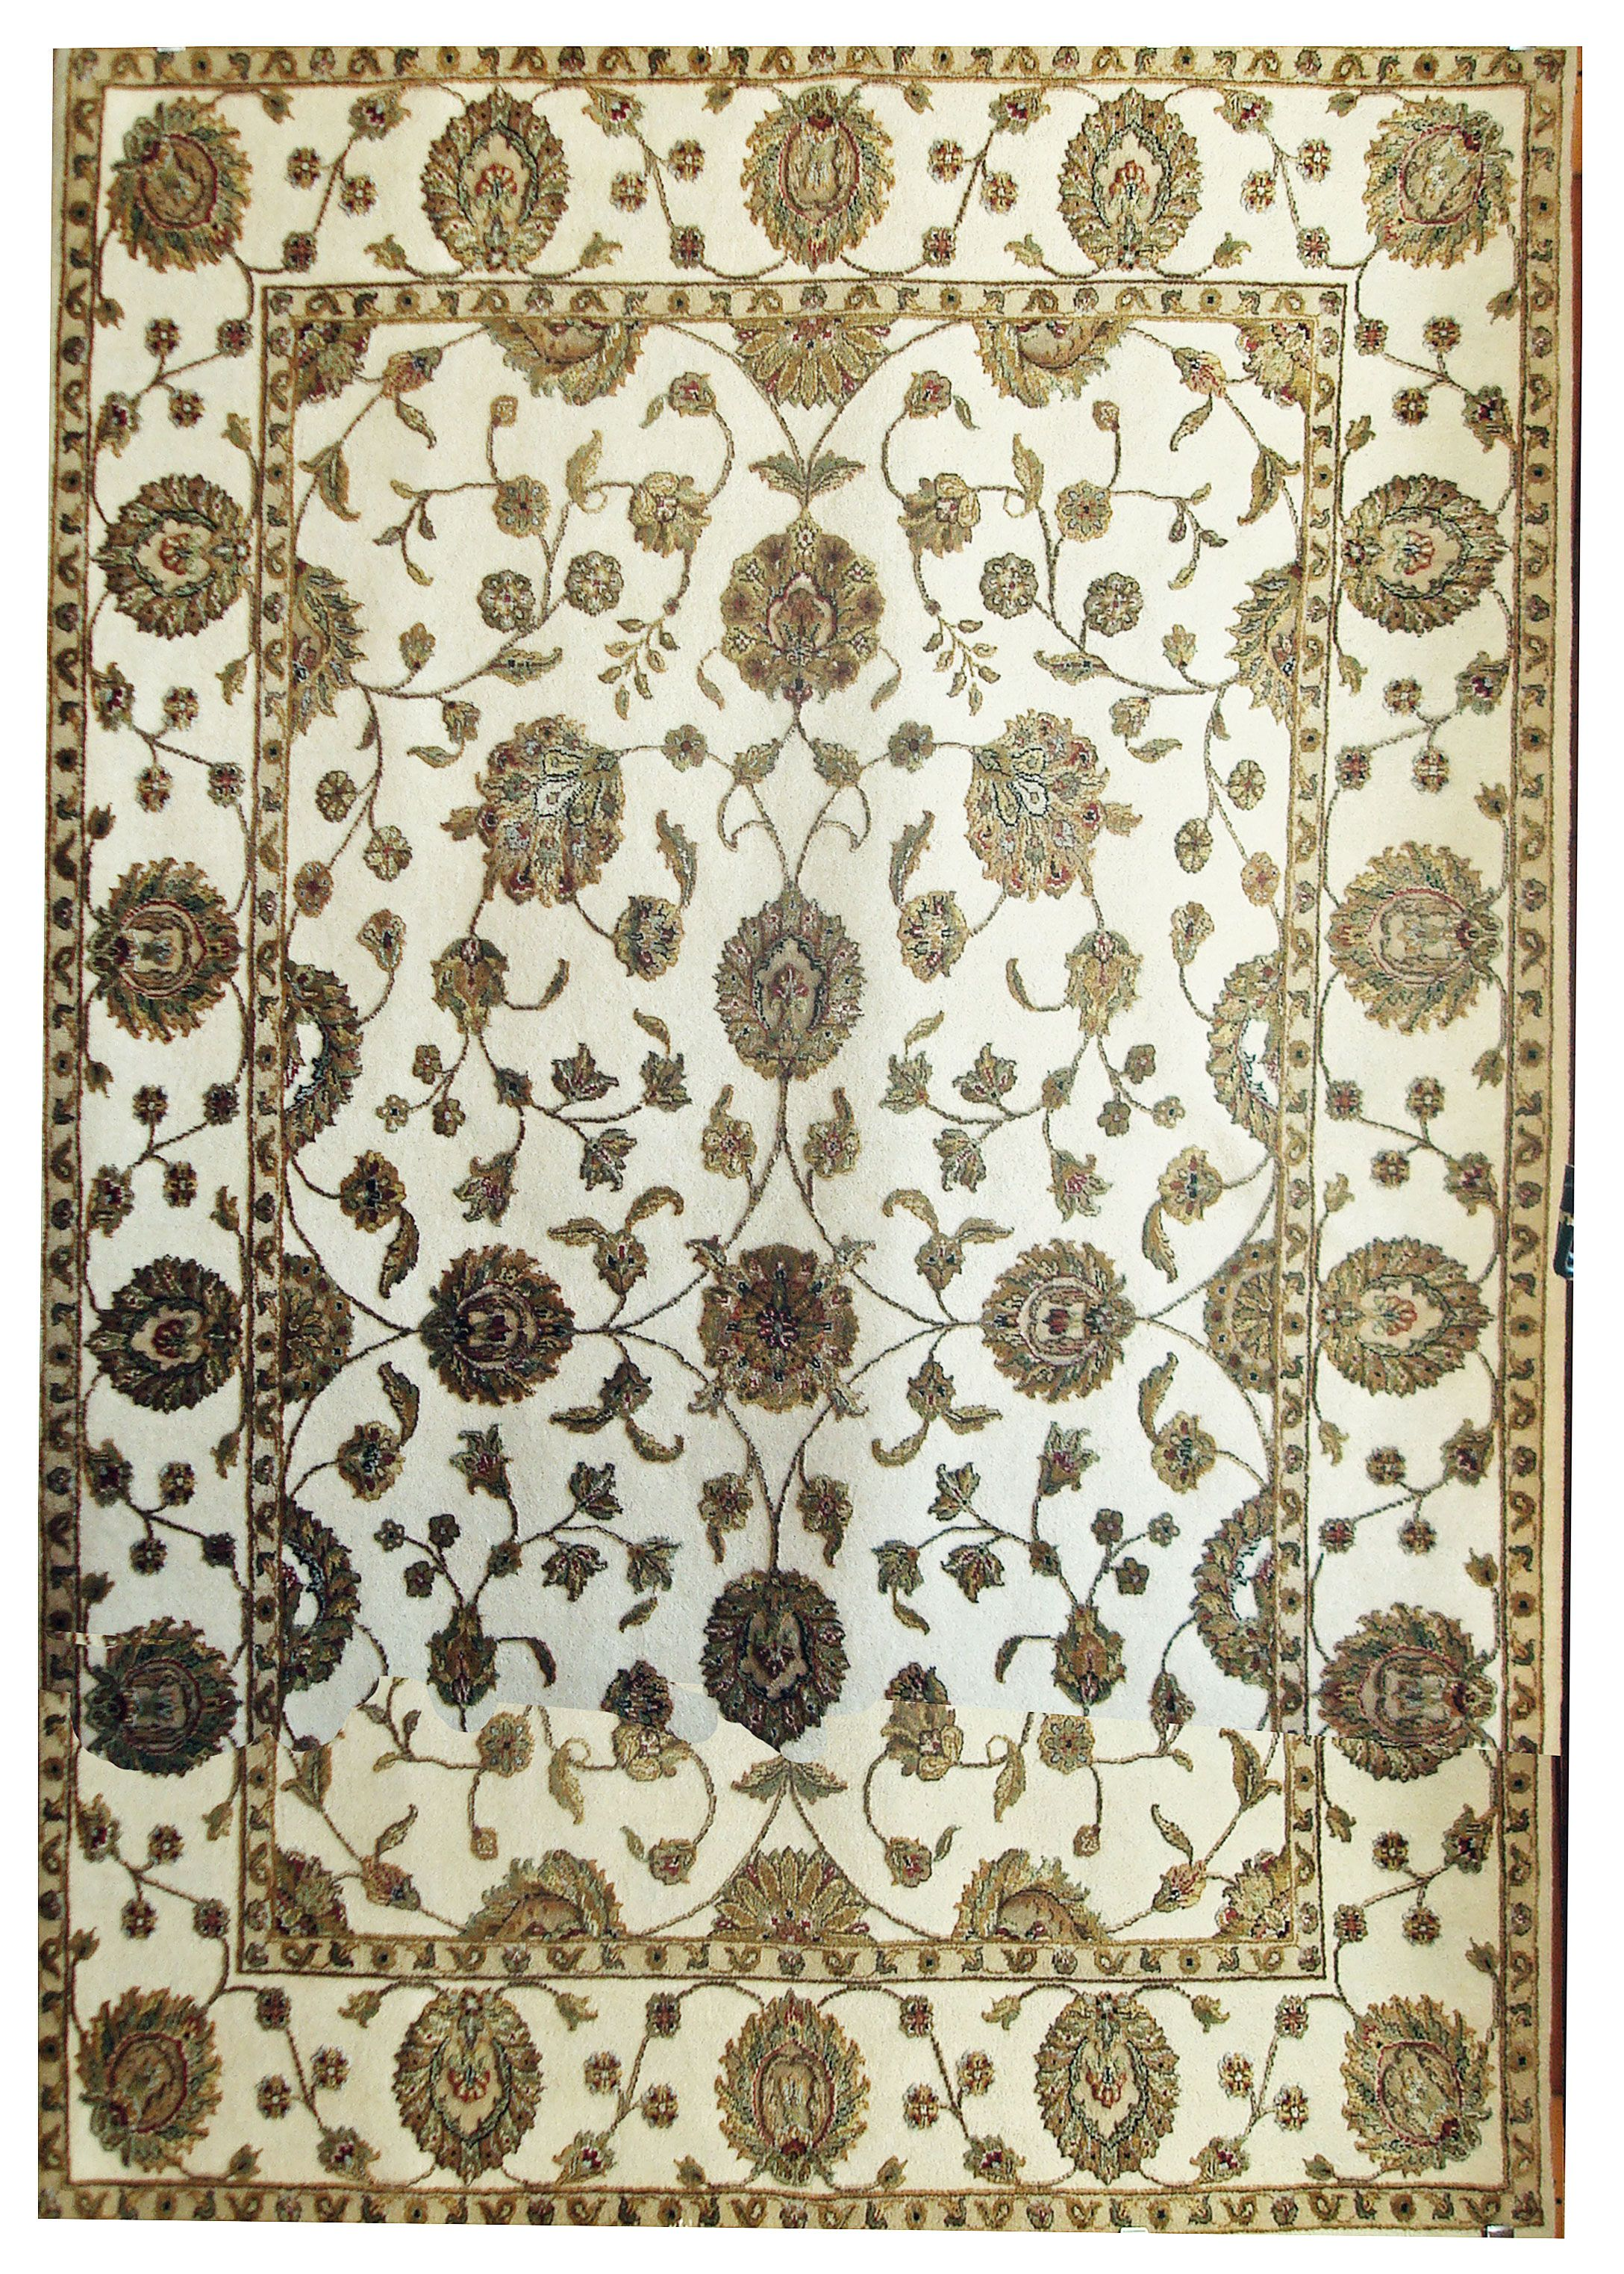 7 Best Rug Gallery ~ Cabot House Images On Pinterest   Hand Weaving, Woven  Rug And House Furniture